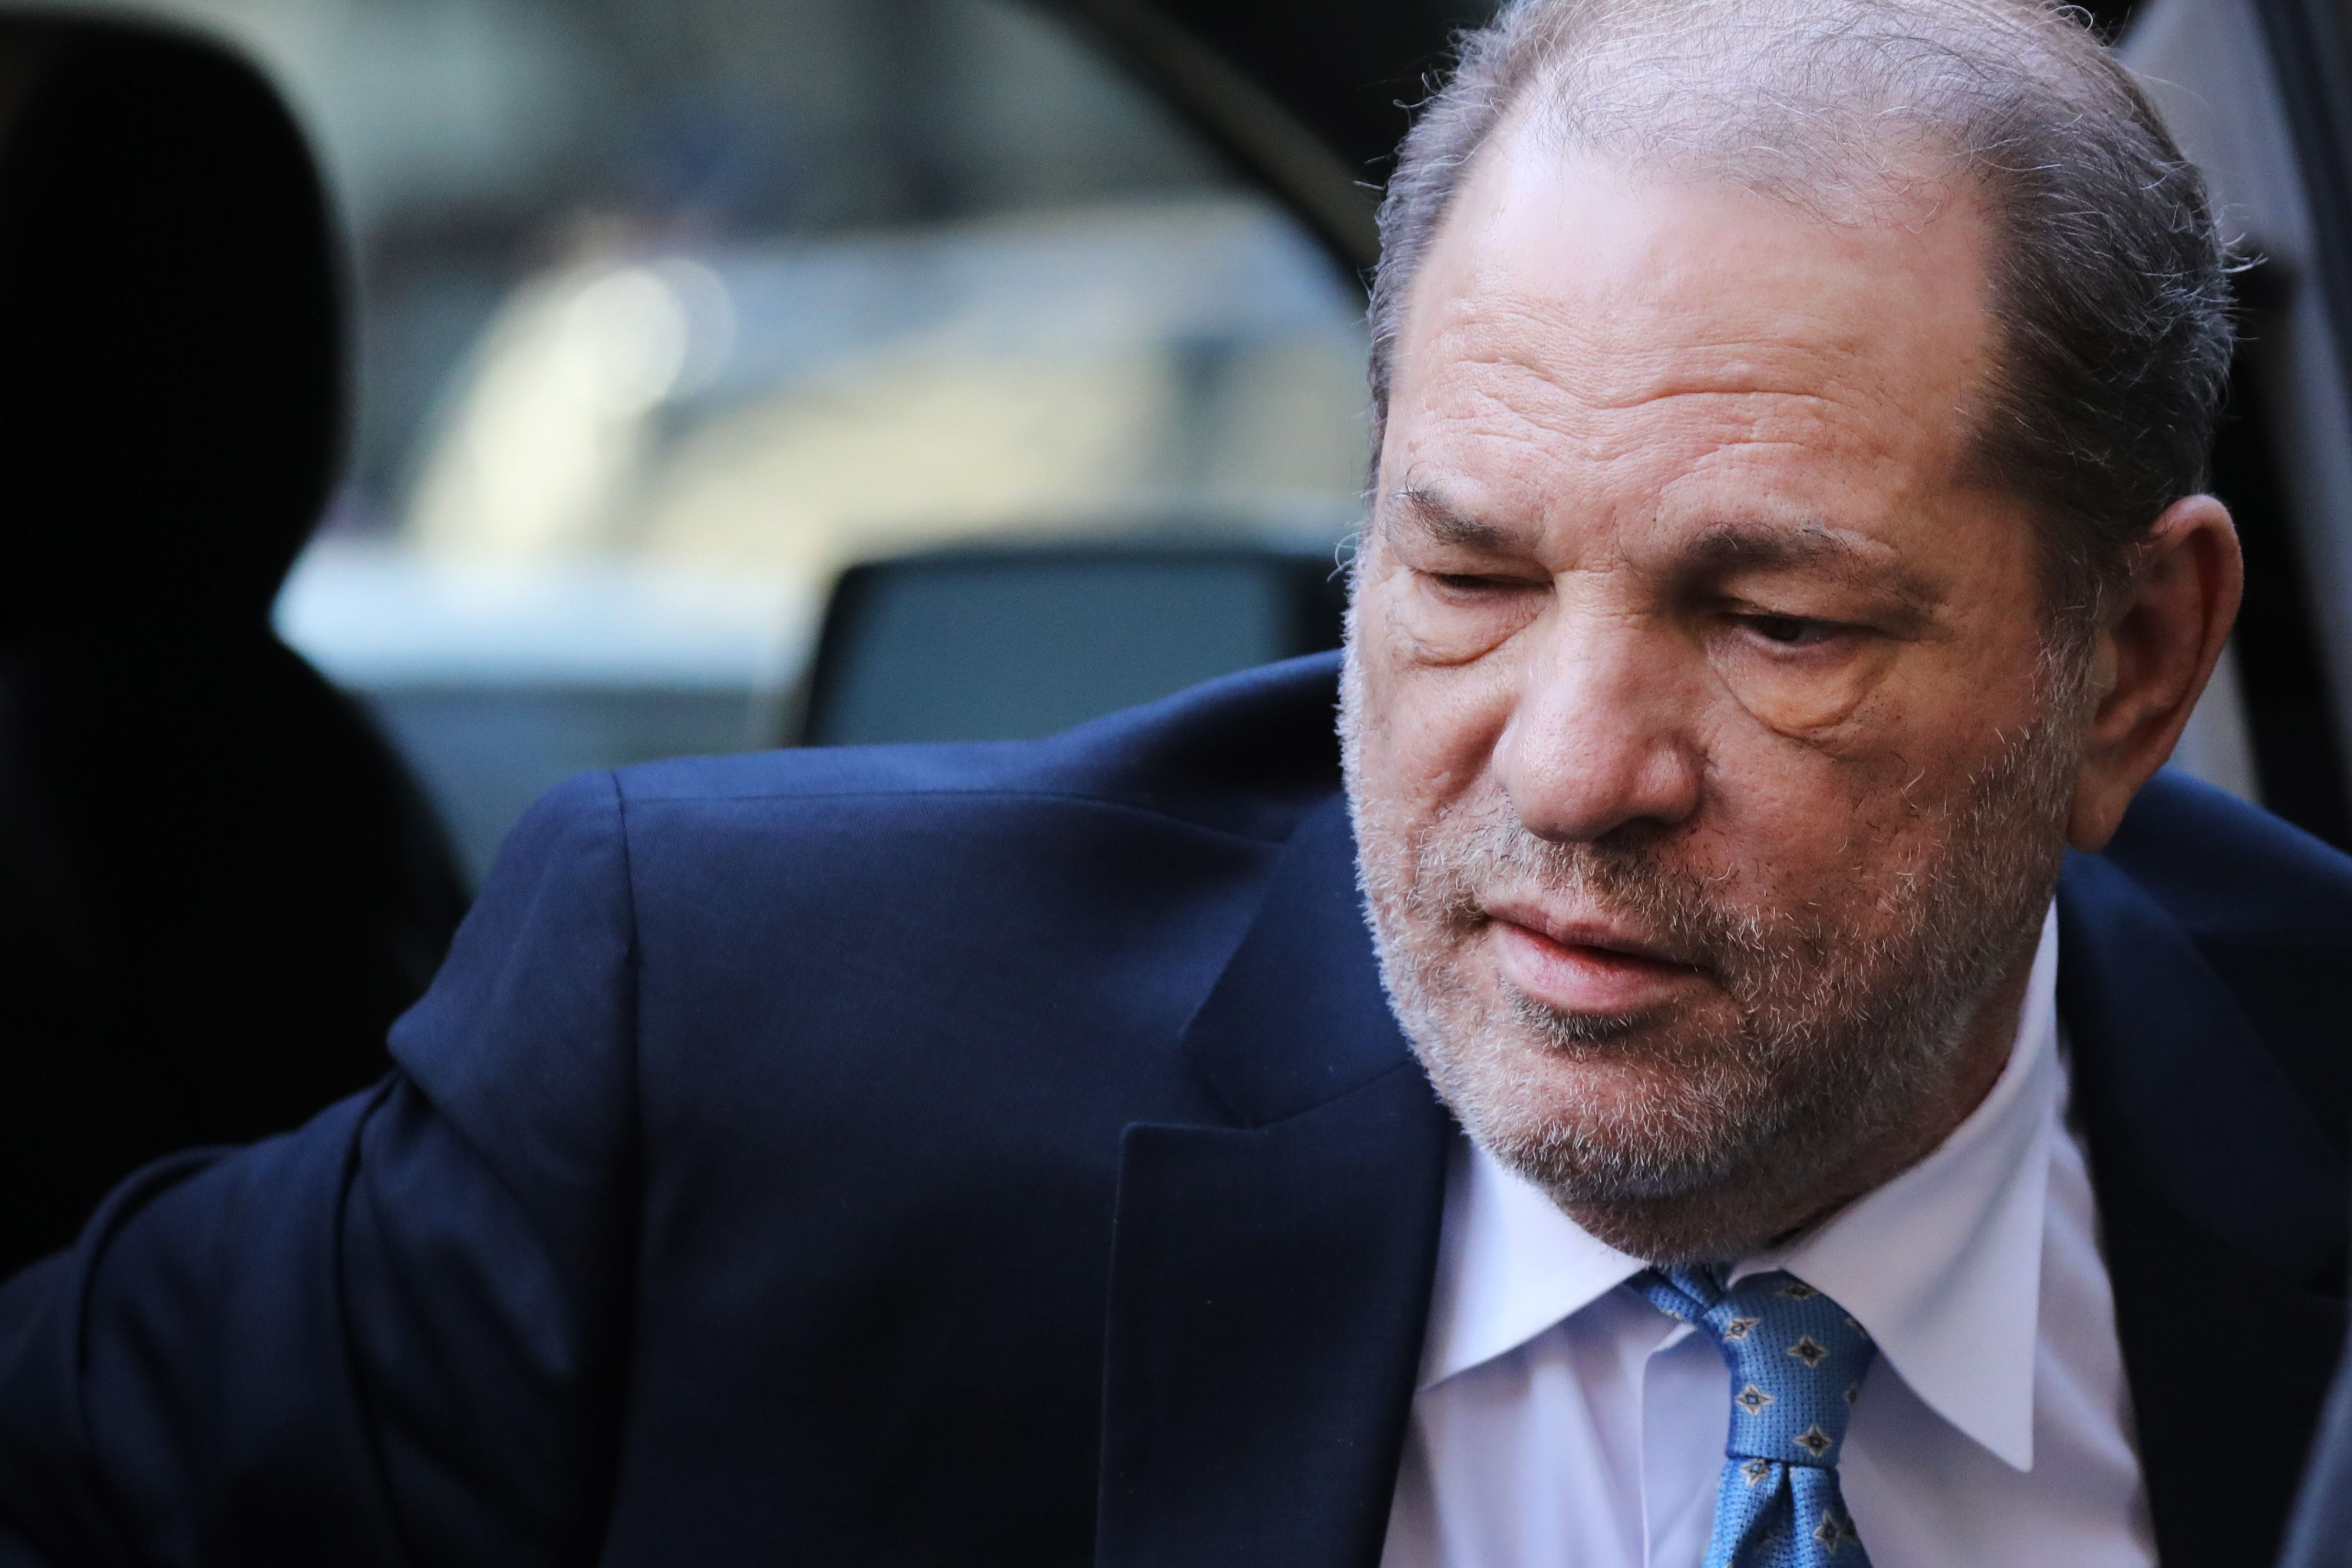 A photo of Harvey Weinstein coming out of a vehicle in a blue suit and poached tie.